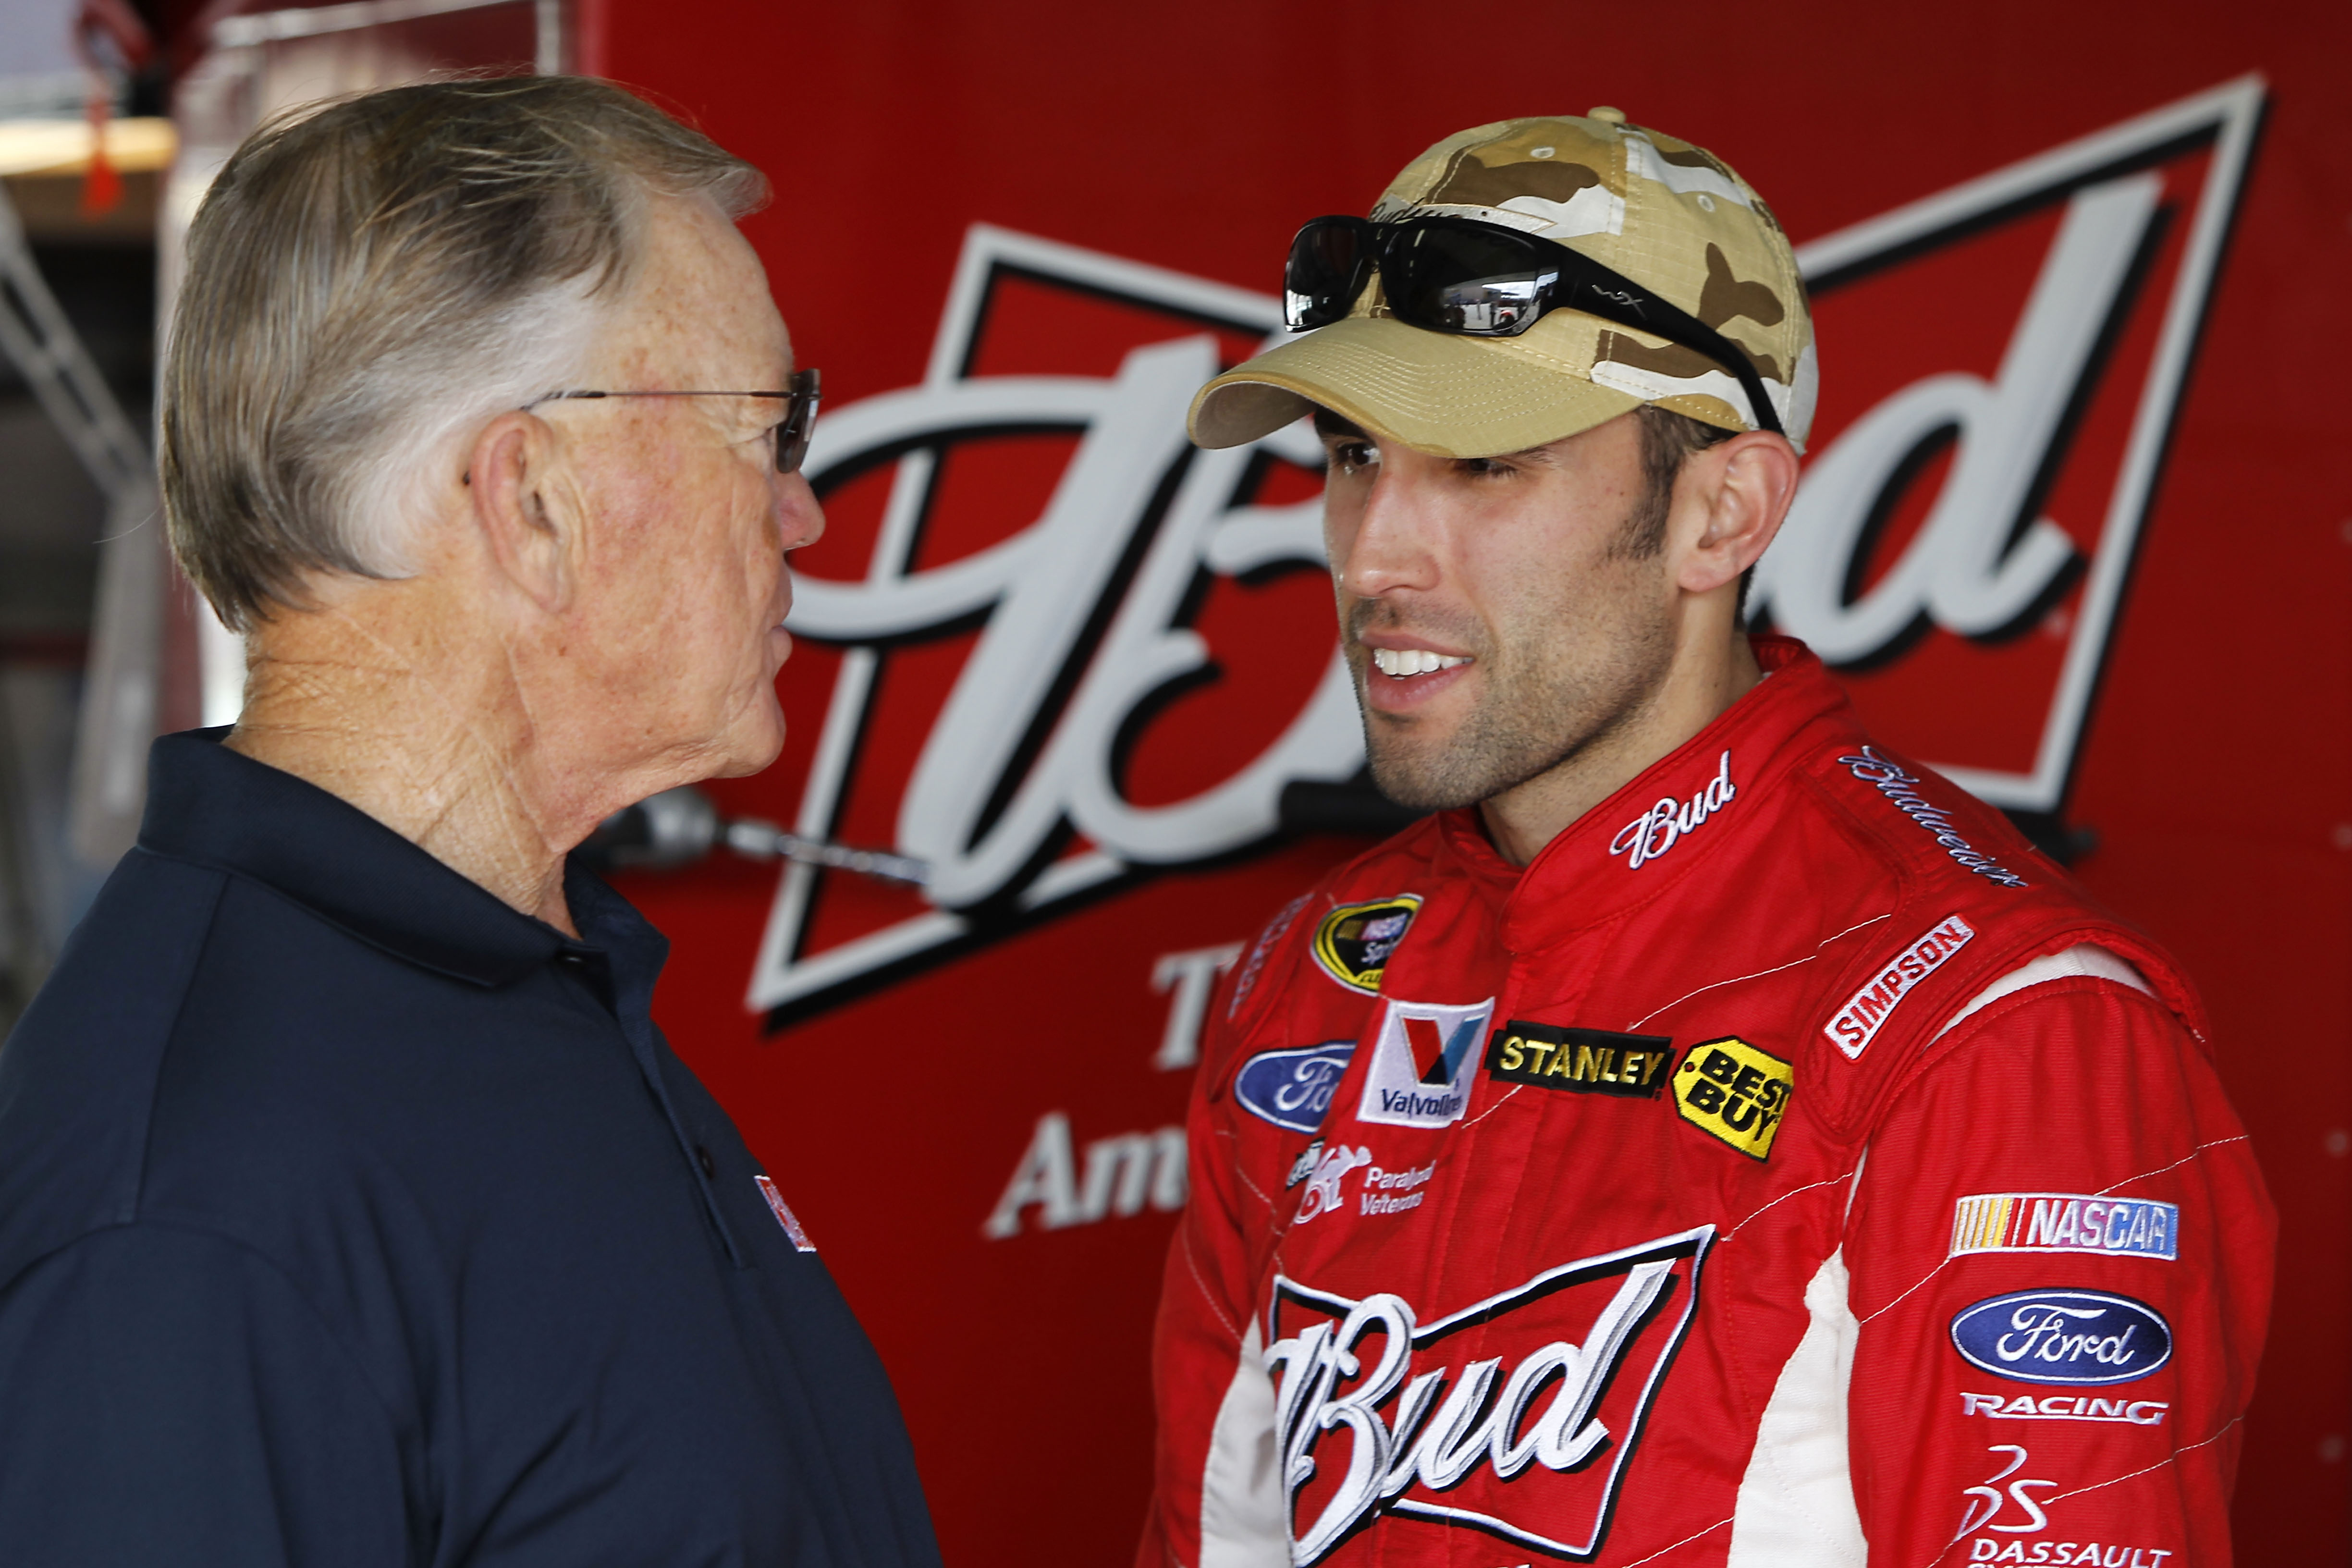 HOMESTEAD, FL - NOVEMBER 20:  Team owner Joe Gibbs (L) talks with Aric Almirola, driver of the #9 Budweiser Ford, in the garage during practice for the NASCAR Sprint Cup Series Ford 400 at Homestead-Miami Speedway on November 20, 2010 in Homestead, Florid